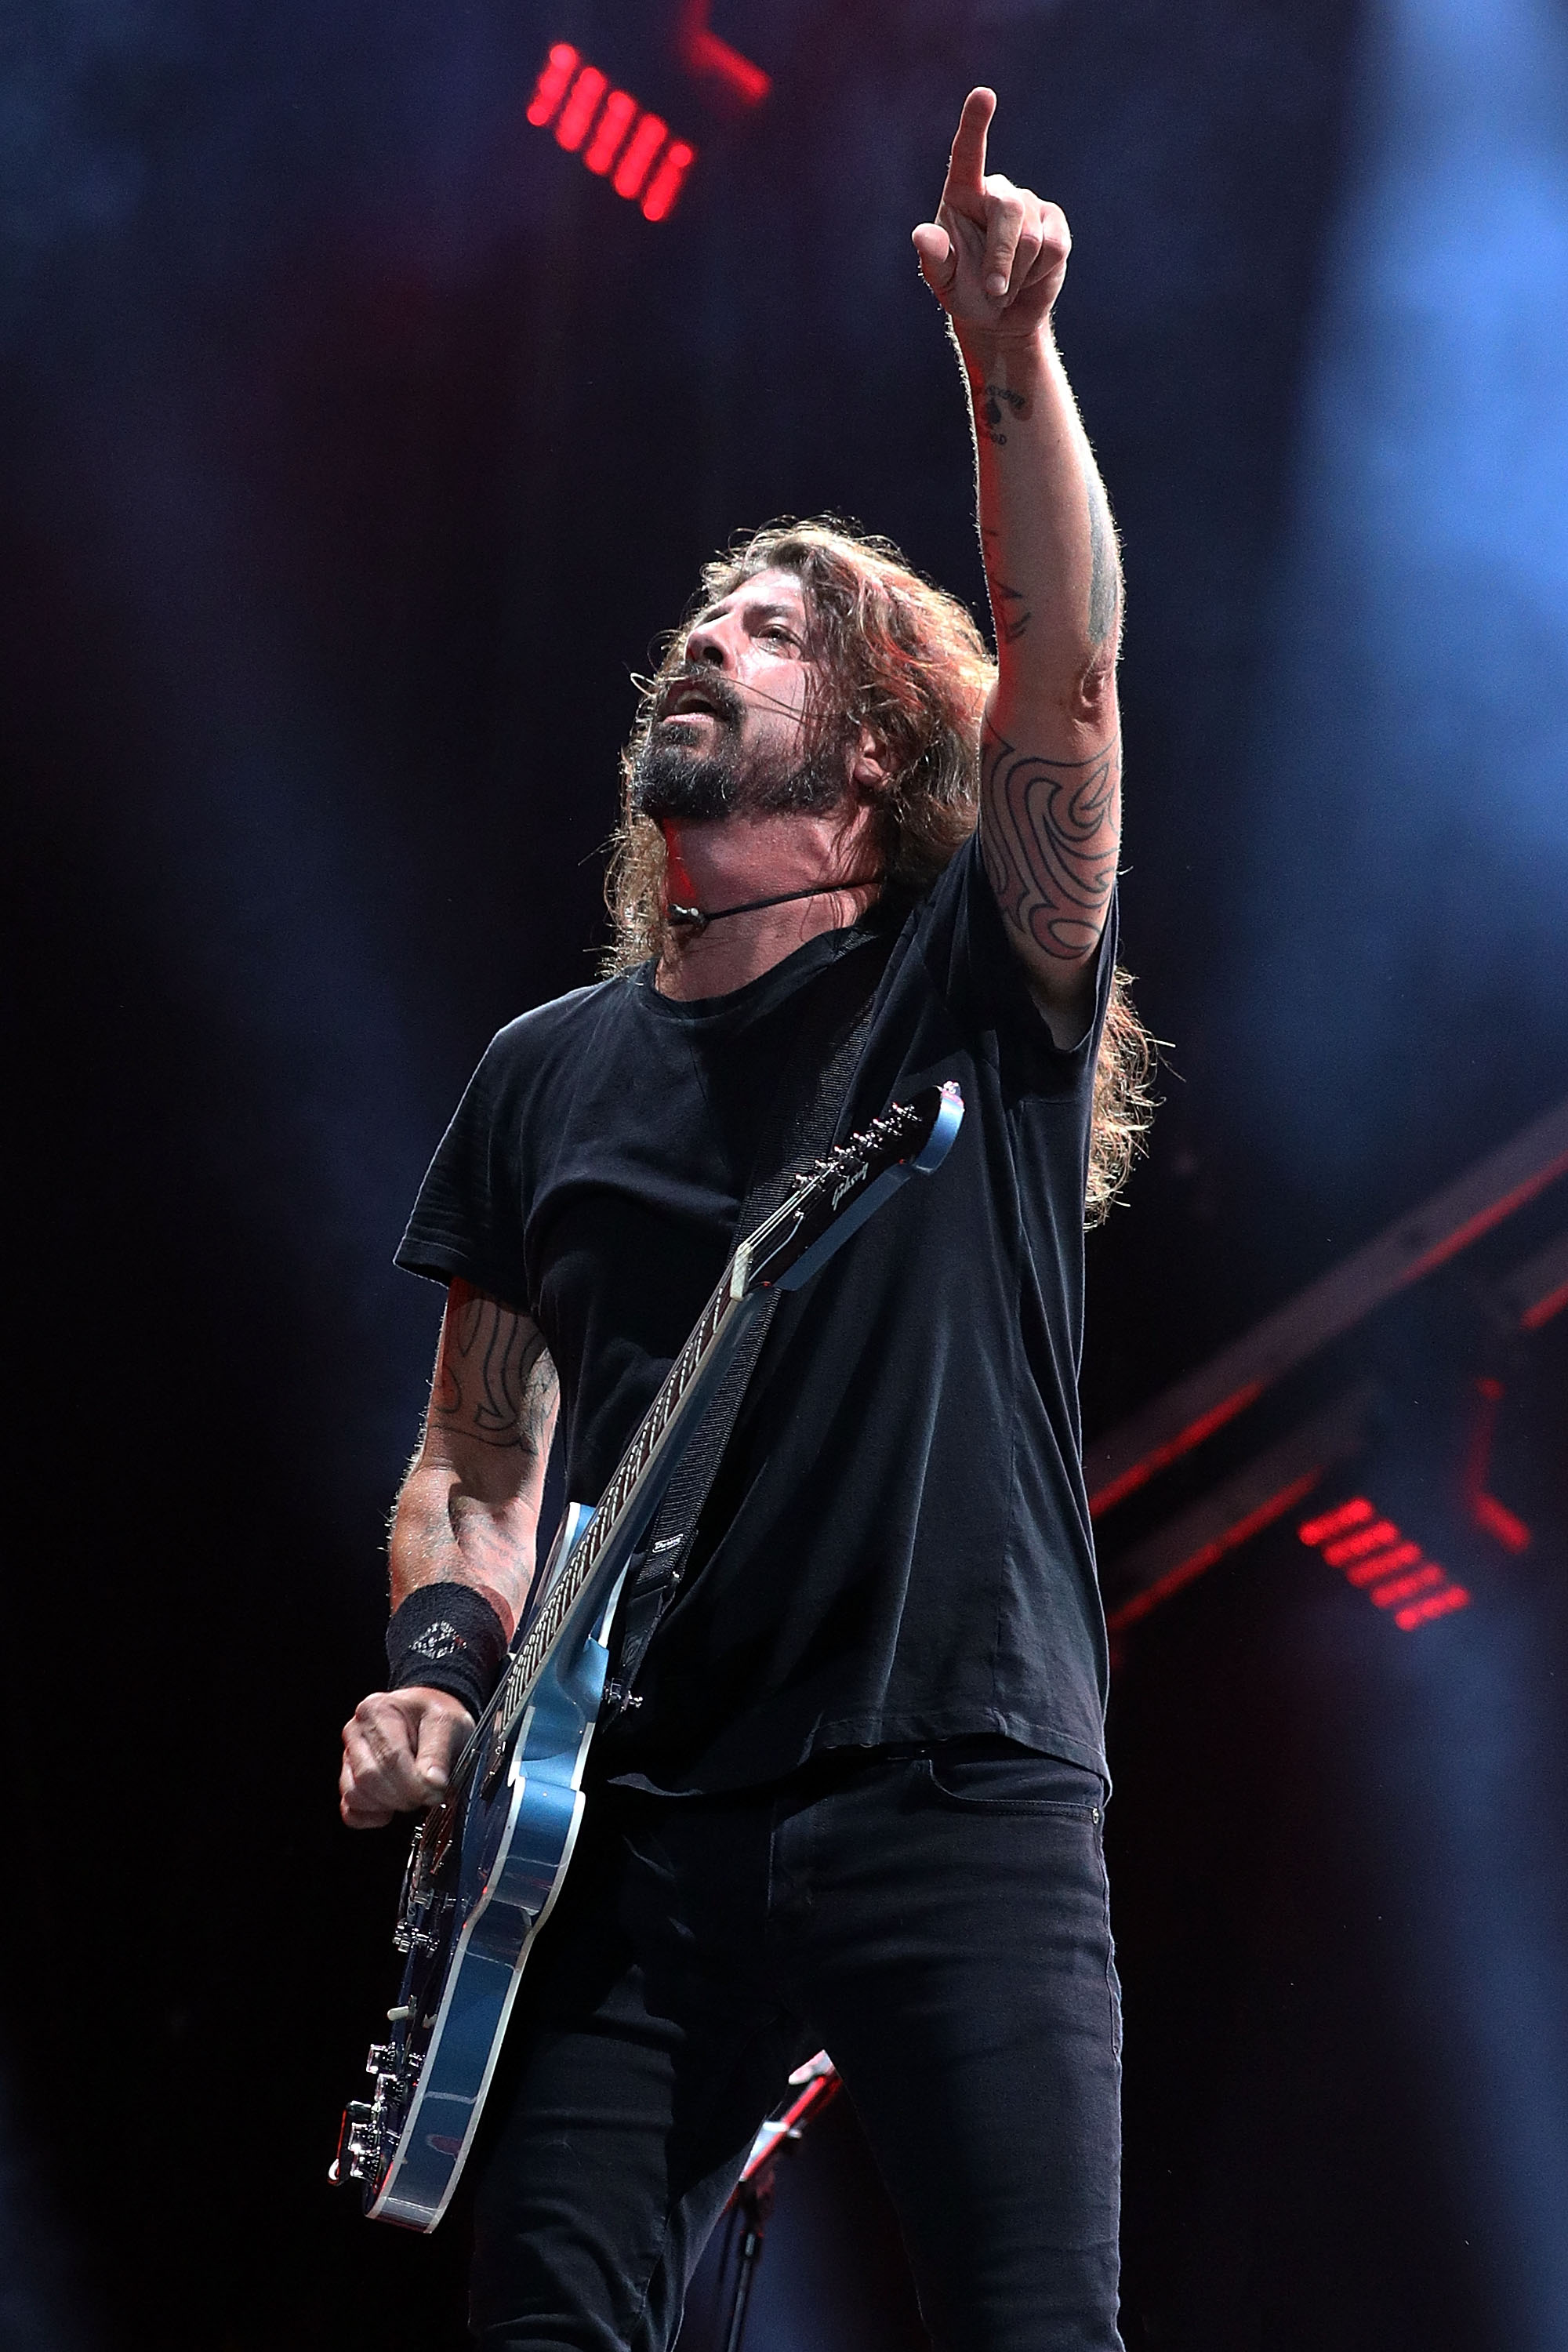 Dave Grohl of Foo Fighters performs during the 2018 KAABOO Del Mar Festival at Del Mar Fairgrounds on September 14, 2018 in Del Mar, California. Photo by Taylor Hill, Getty Images